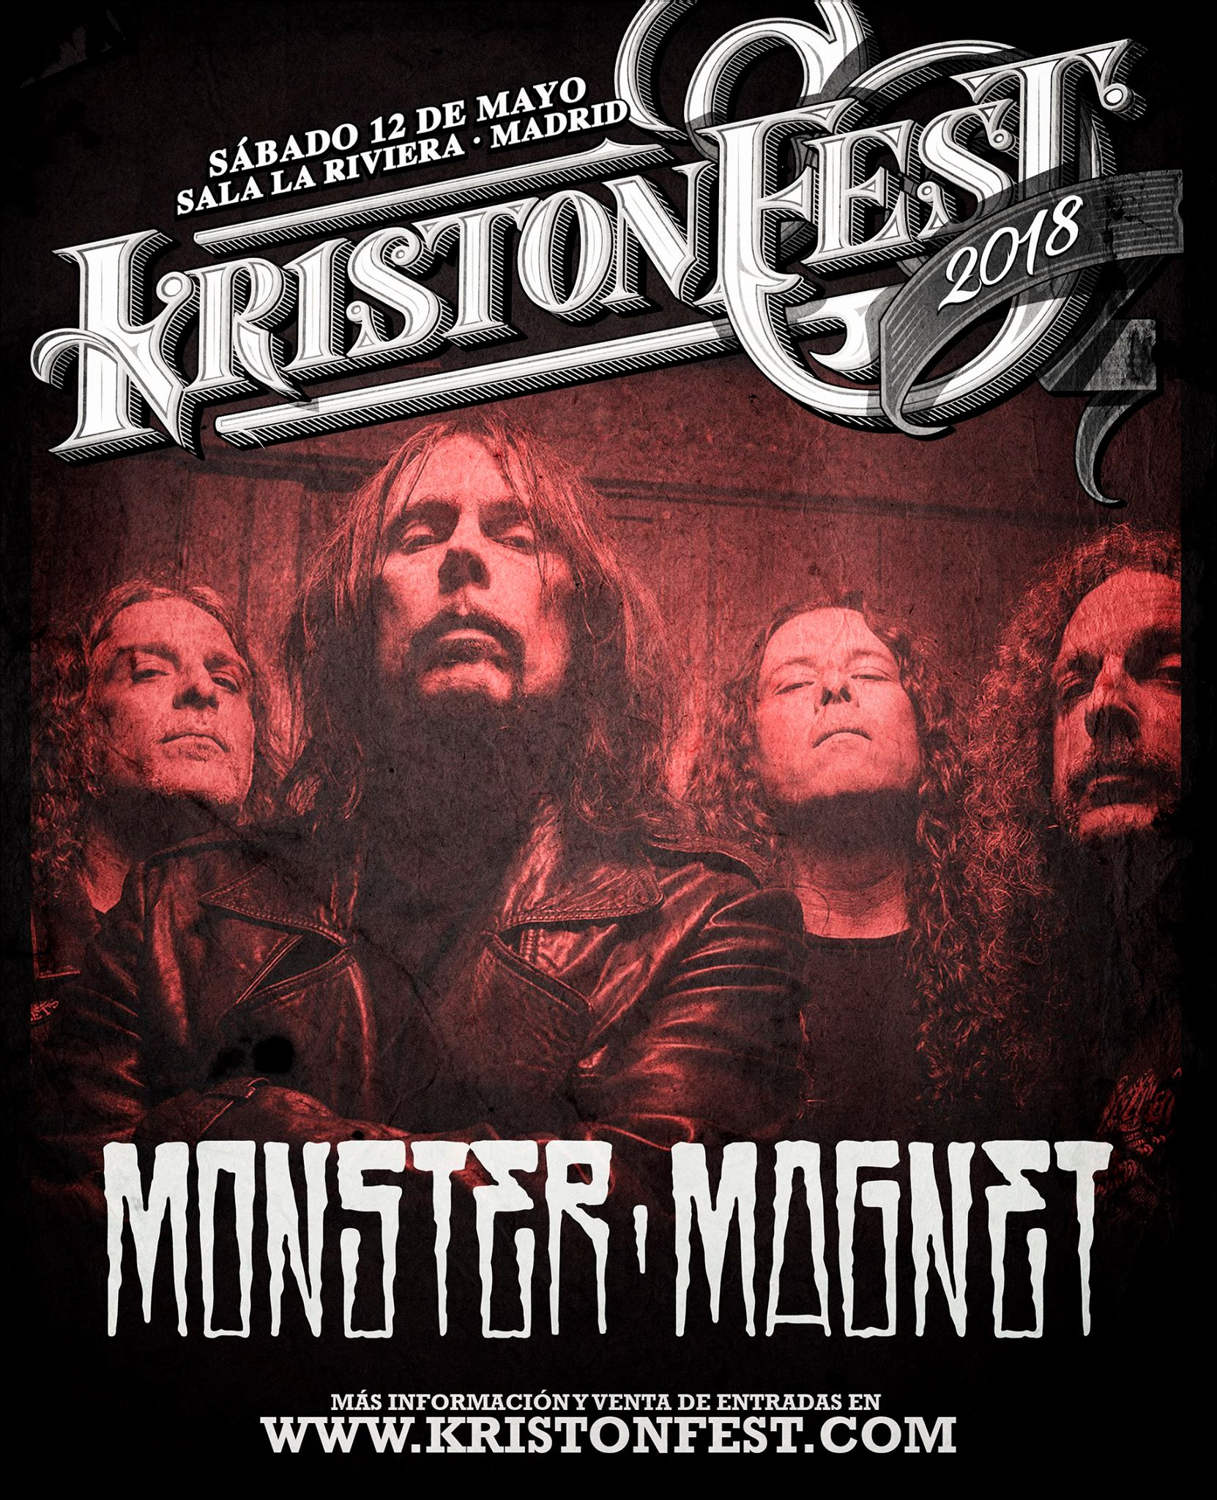 Kriston Fest 2018 - Monster Magnet